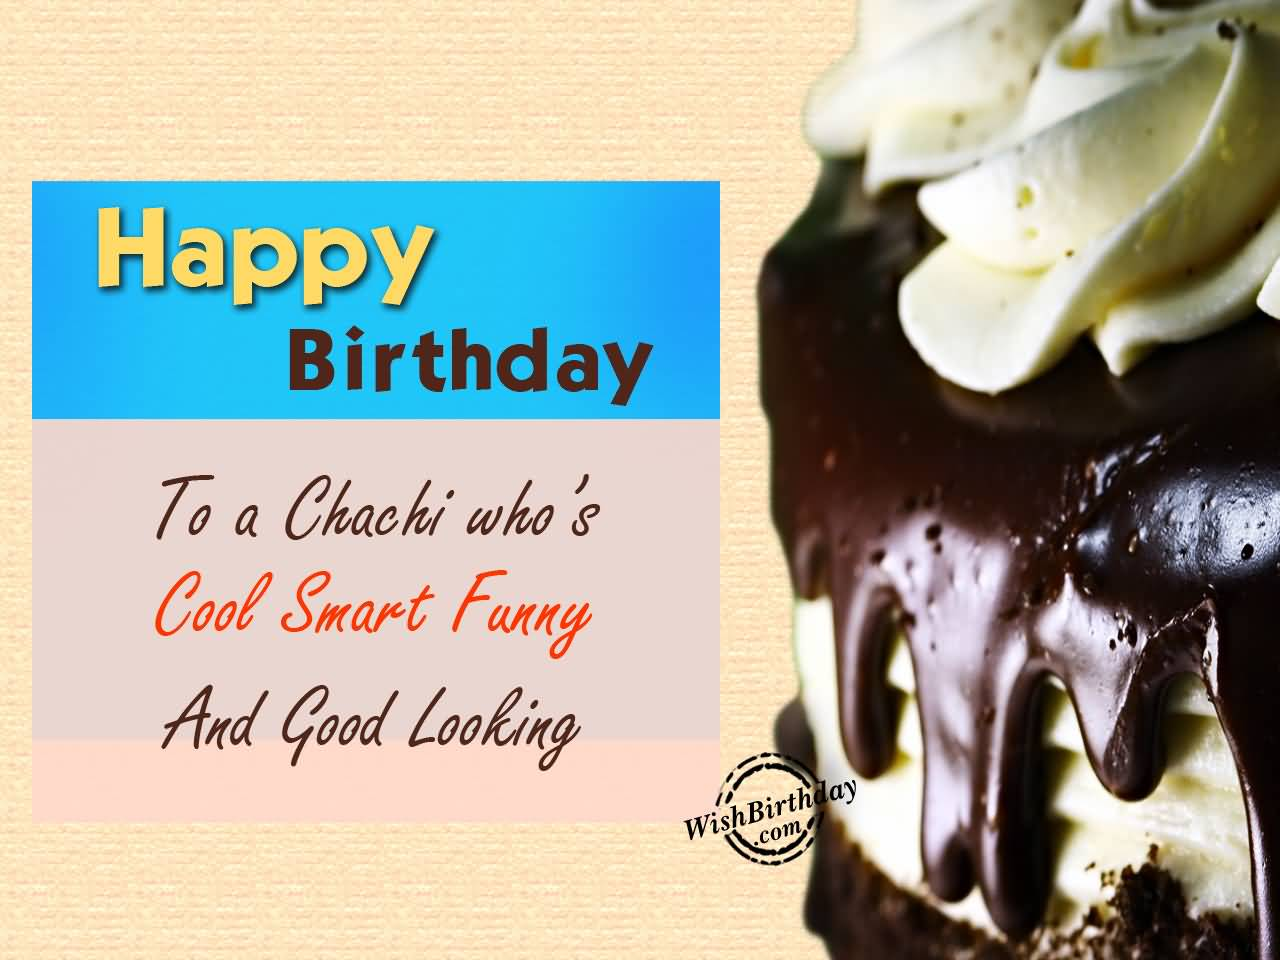 Happy Birthday To A Chachi Ji Who's Cool Smart Funny And Good Looking